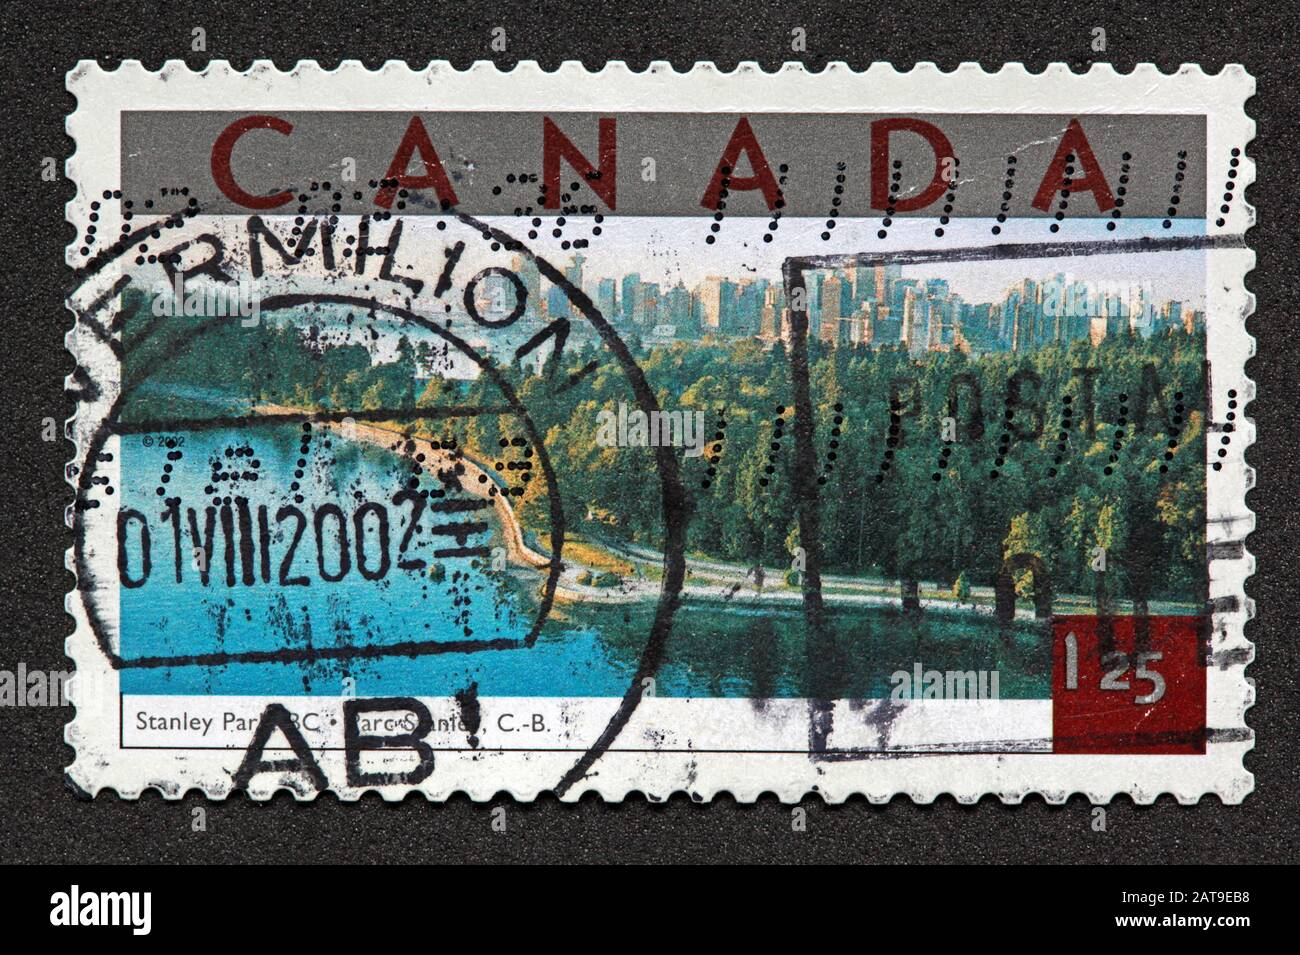 Hotpixuk,@Hotpixuk,GoTonySmith,stamp,postal,franked,frank,used stamps,used franked,used,franked stamp,from envelope,history,historic,old,poste,post office,communications,postage,sending letters,sending,parcels,2002,Canada stamp,$1.25,1.25,Stanley Park,postmark,post,nature,Canadian